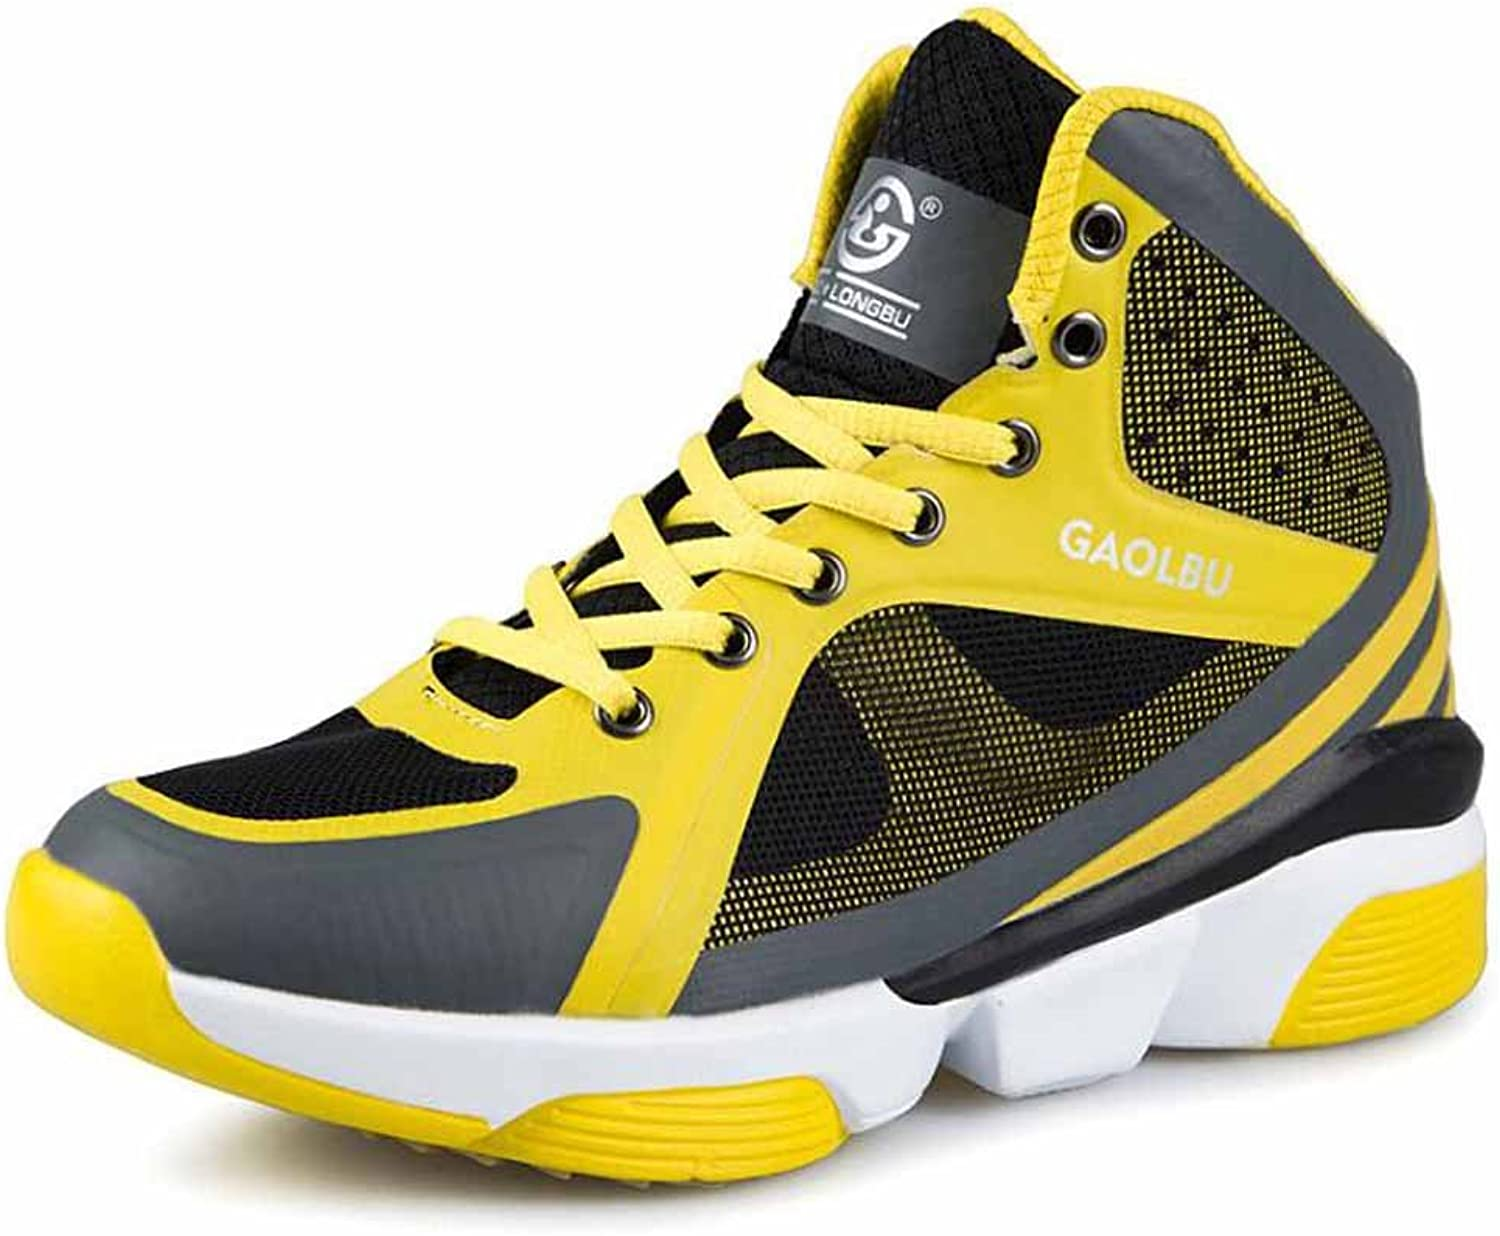 GLSHI Men Breathable Basketball shoes Autumn High Top Outdoor Sports shoes Size 36-45